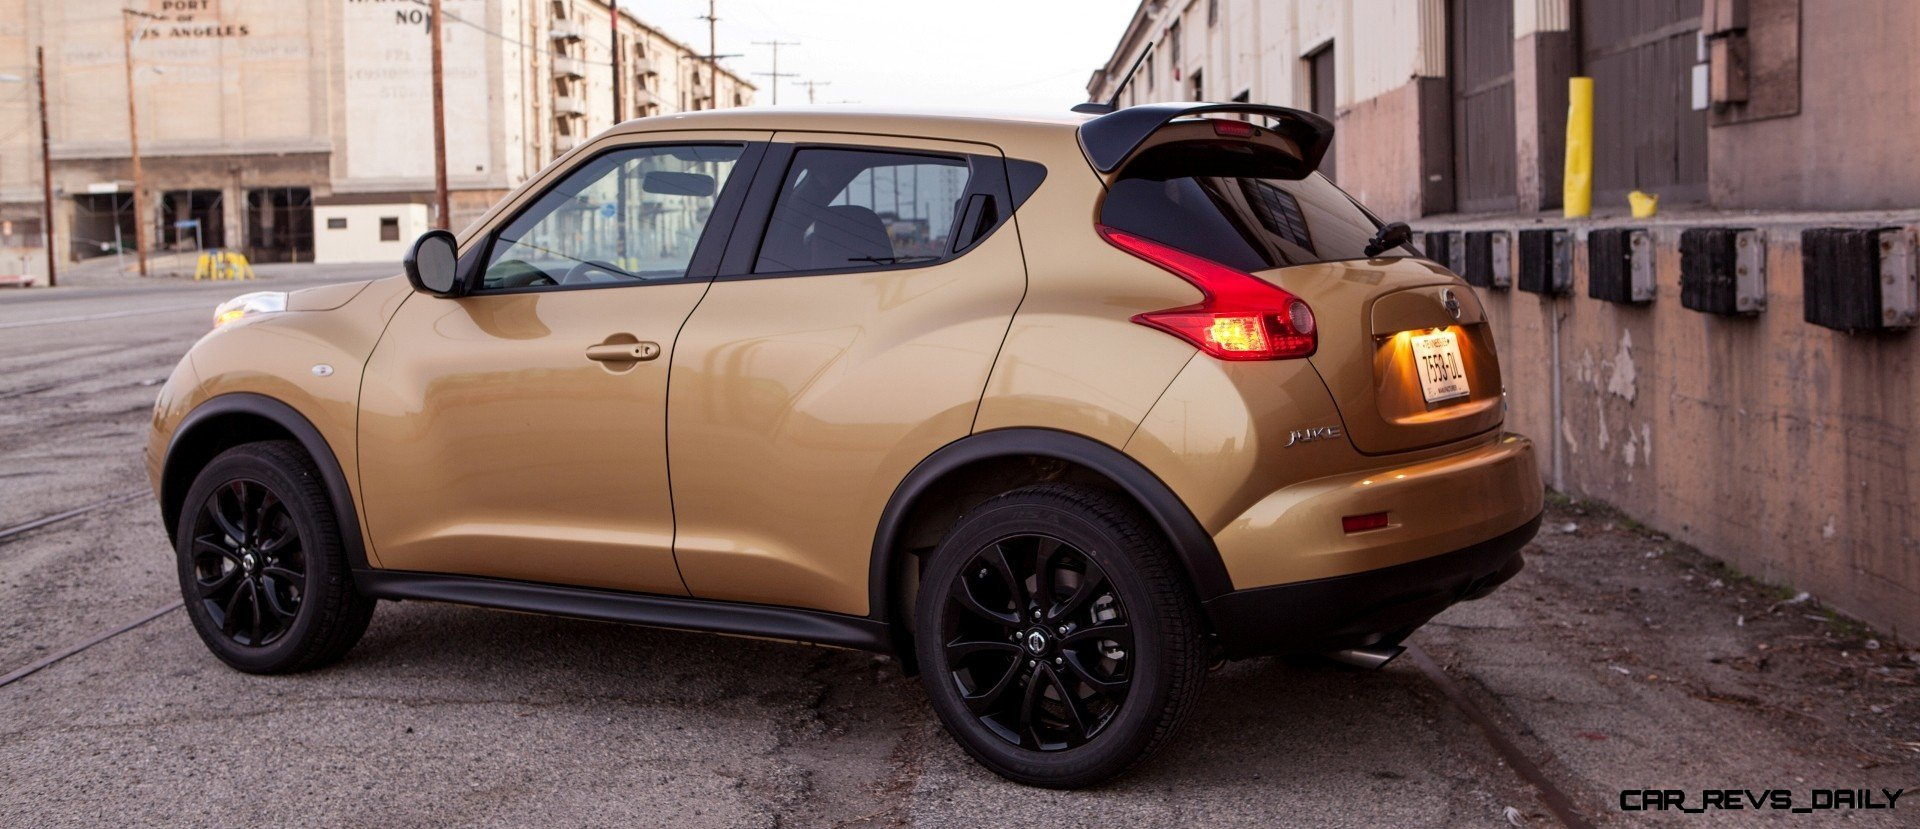 188hp Turbo Standard 2014 Nissan Juke Midnight Edition 6 Sp Manual Fwd From 19 000 Awd Auto From 21 000 Car Revs Daily Com